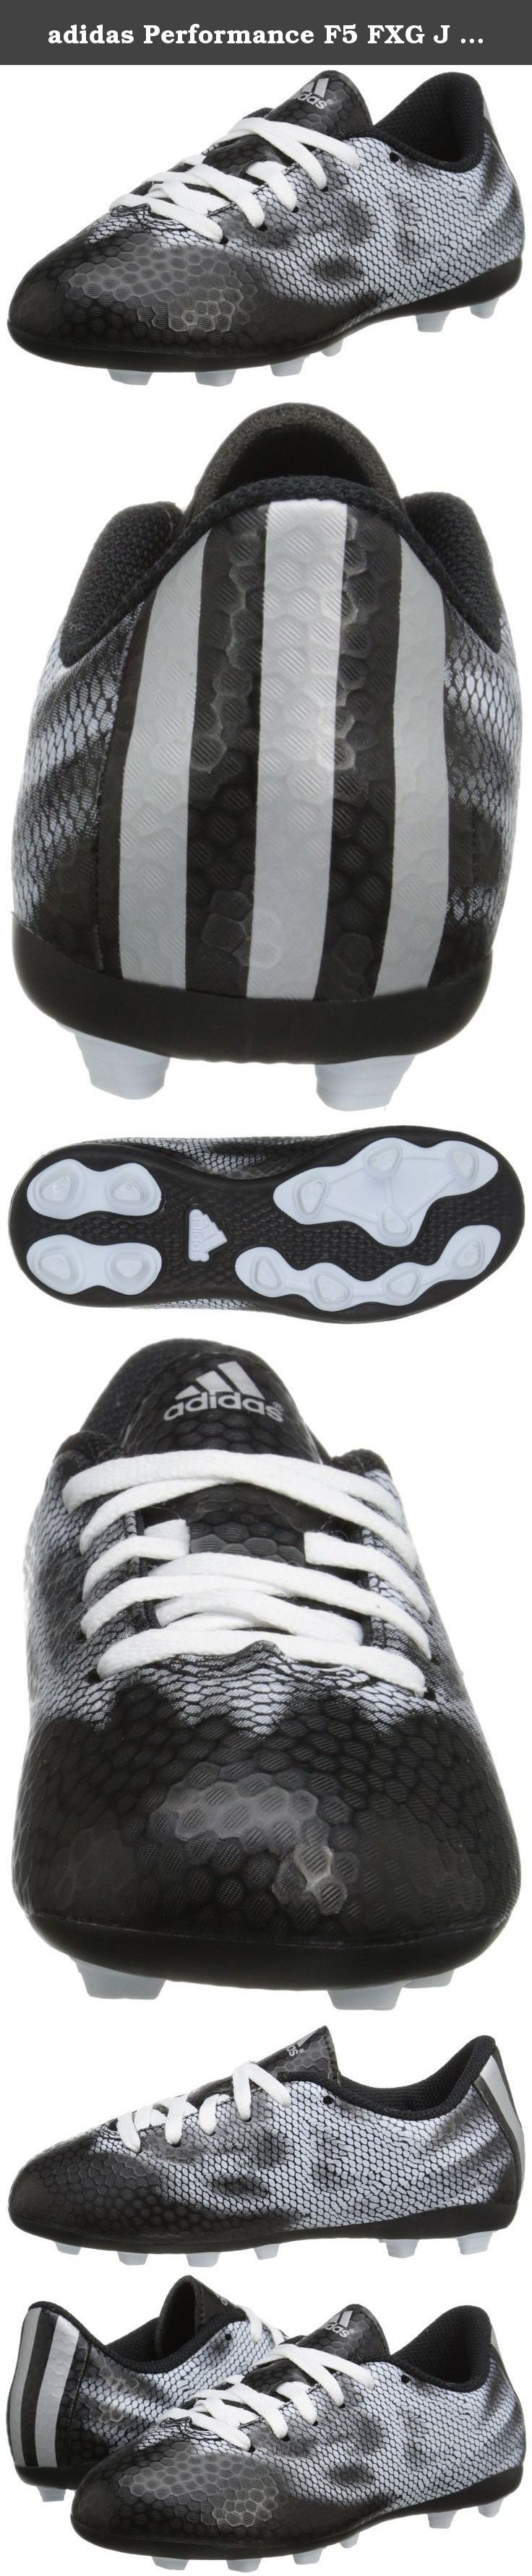 adidas Performance F5 FXG J Firm-Ground Soccer Cleat (Little Kid/Big Kid), Core Black/Metallic/Silver/Metallic/Silver, 5.5 M US Big Kid. Printed synthetic upper. Lace-up closure. High, supportive collar. Reinforced toe prevents blowouts. Textile lining provides all-game comfort. Die-cut EVA sock liner inlays. Cushioning studs allow for quick rebound. Flexible ground tooling at outsole.